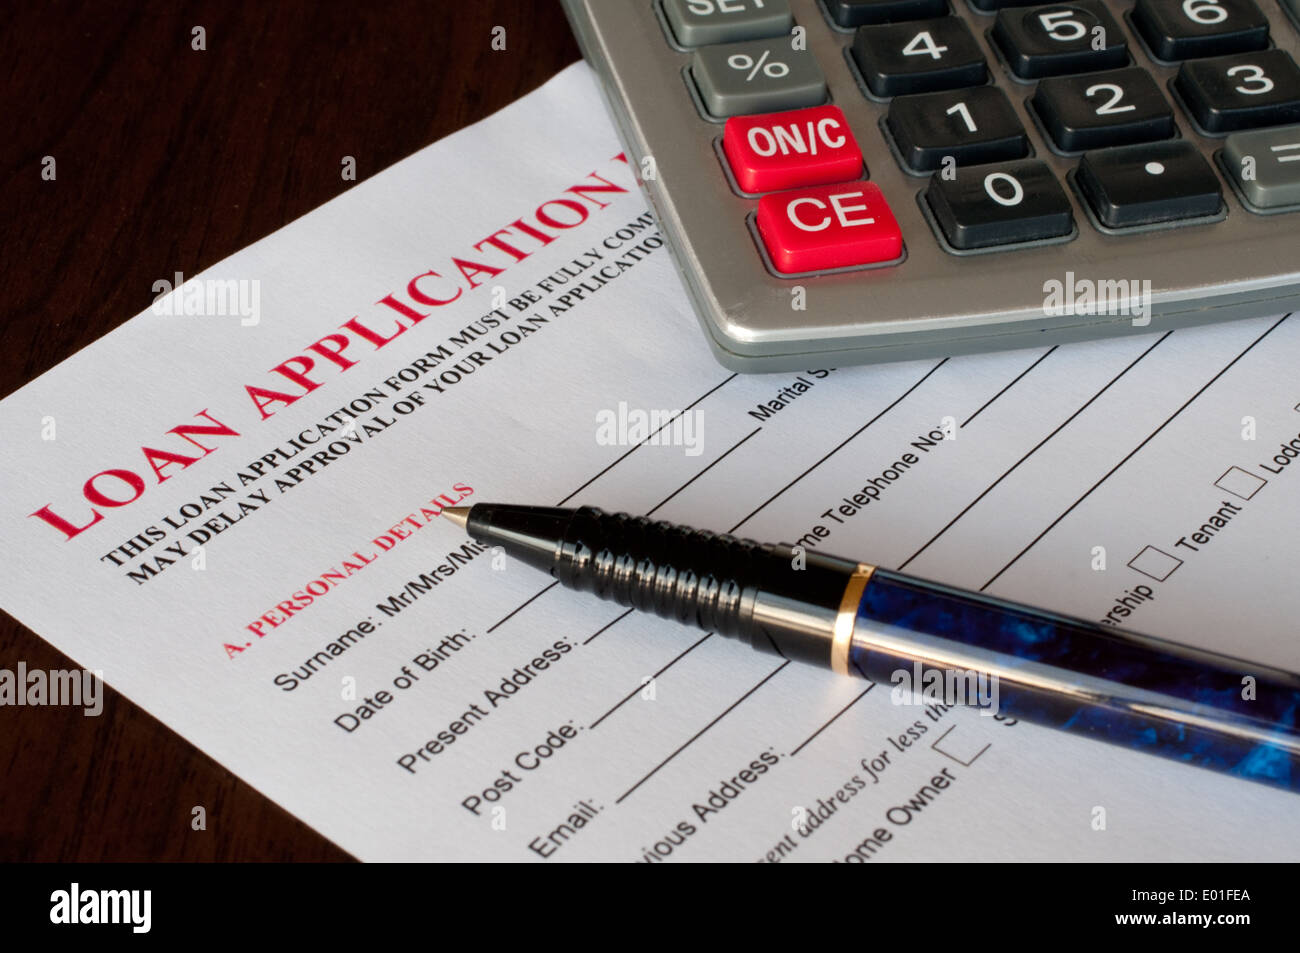 Loan application form with pen and calculator Stock Photo